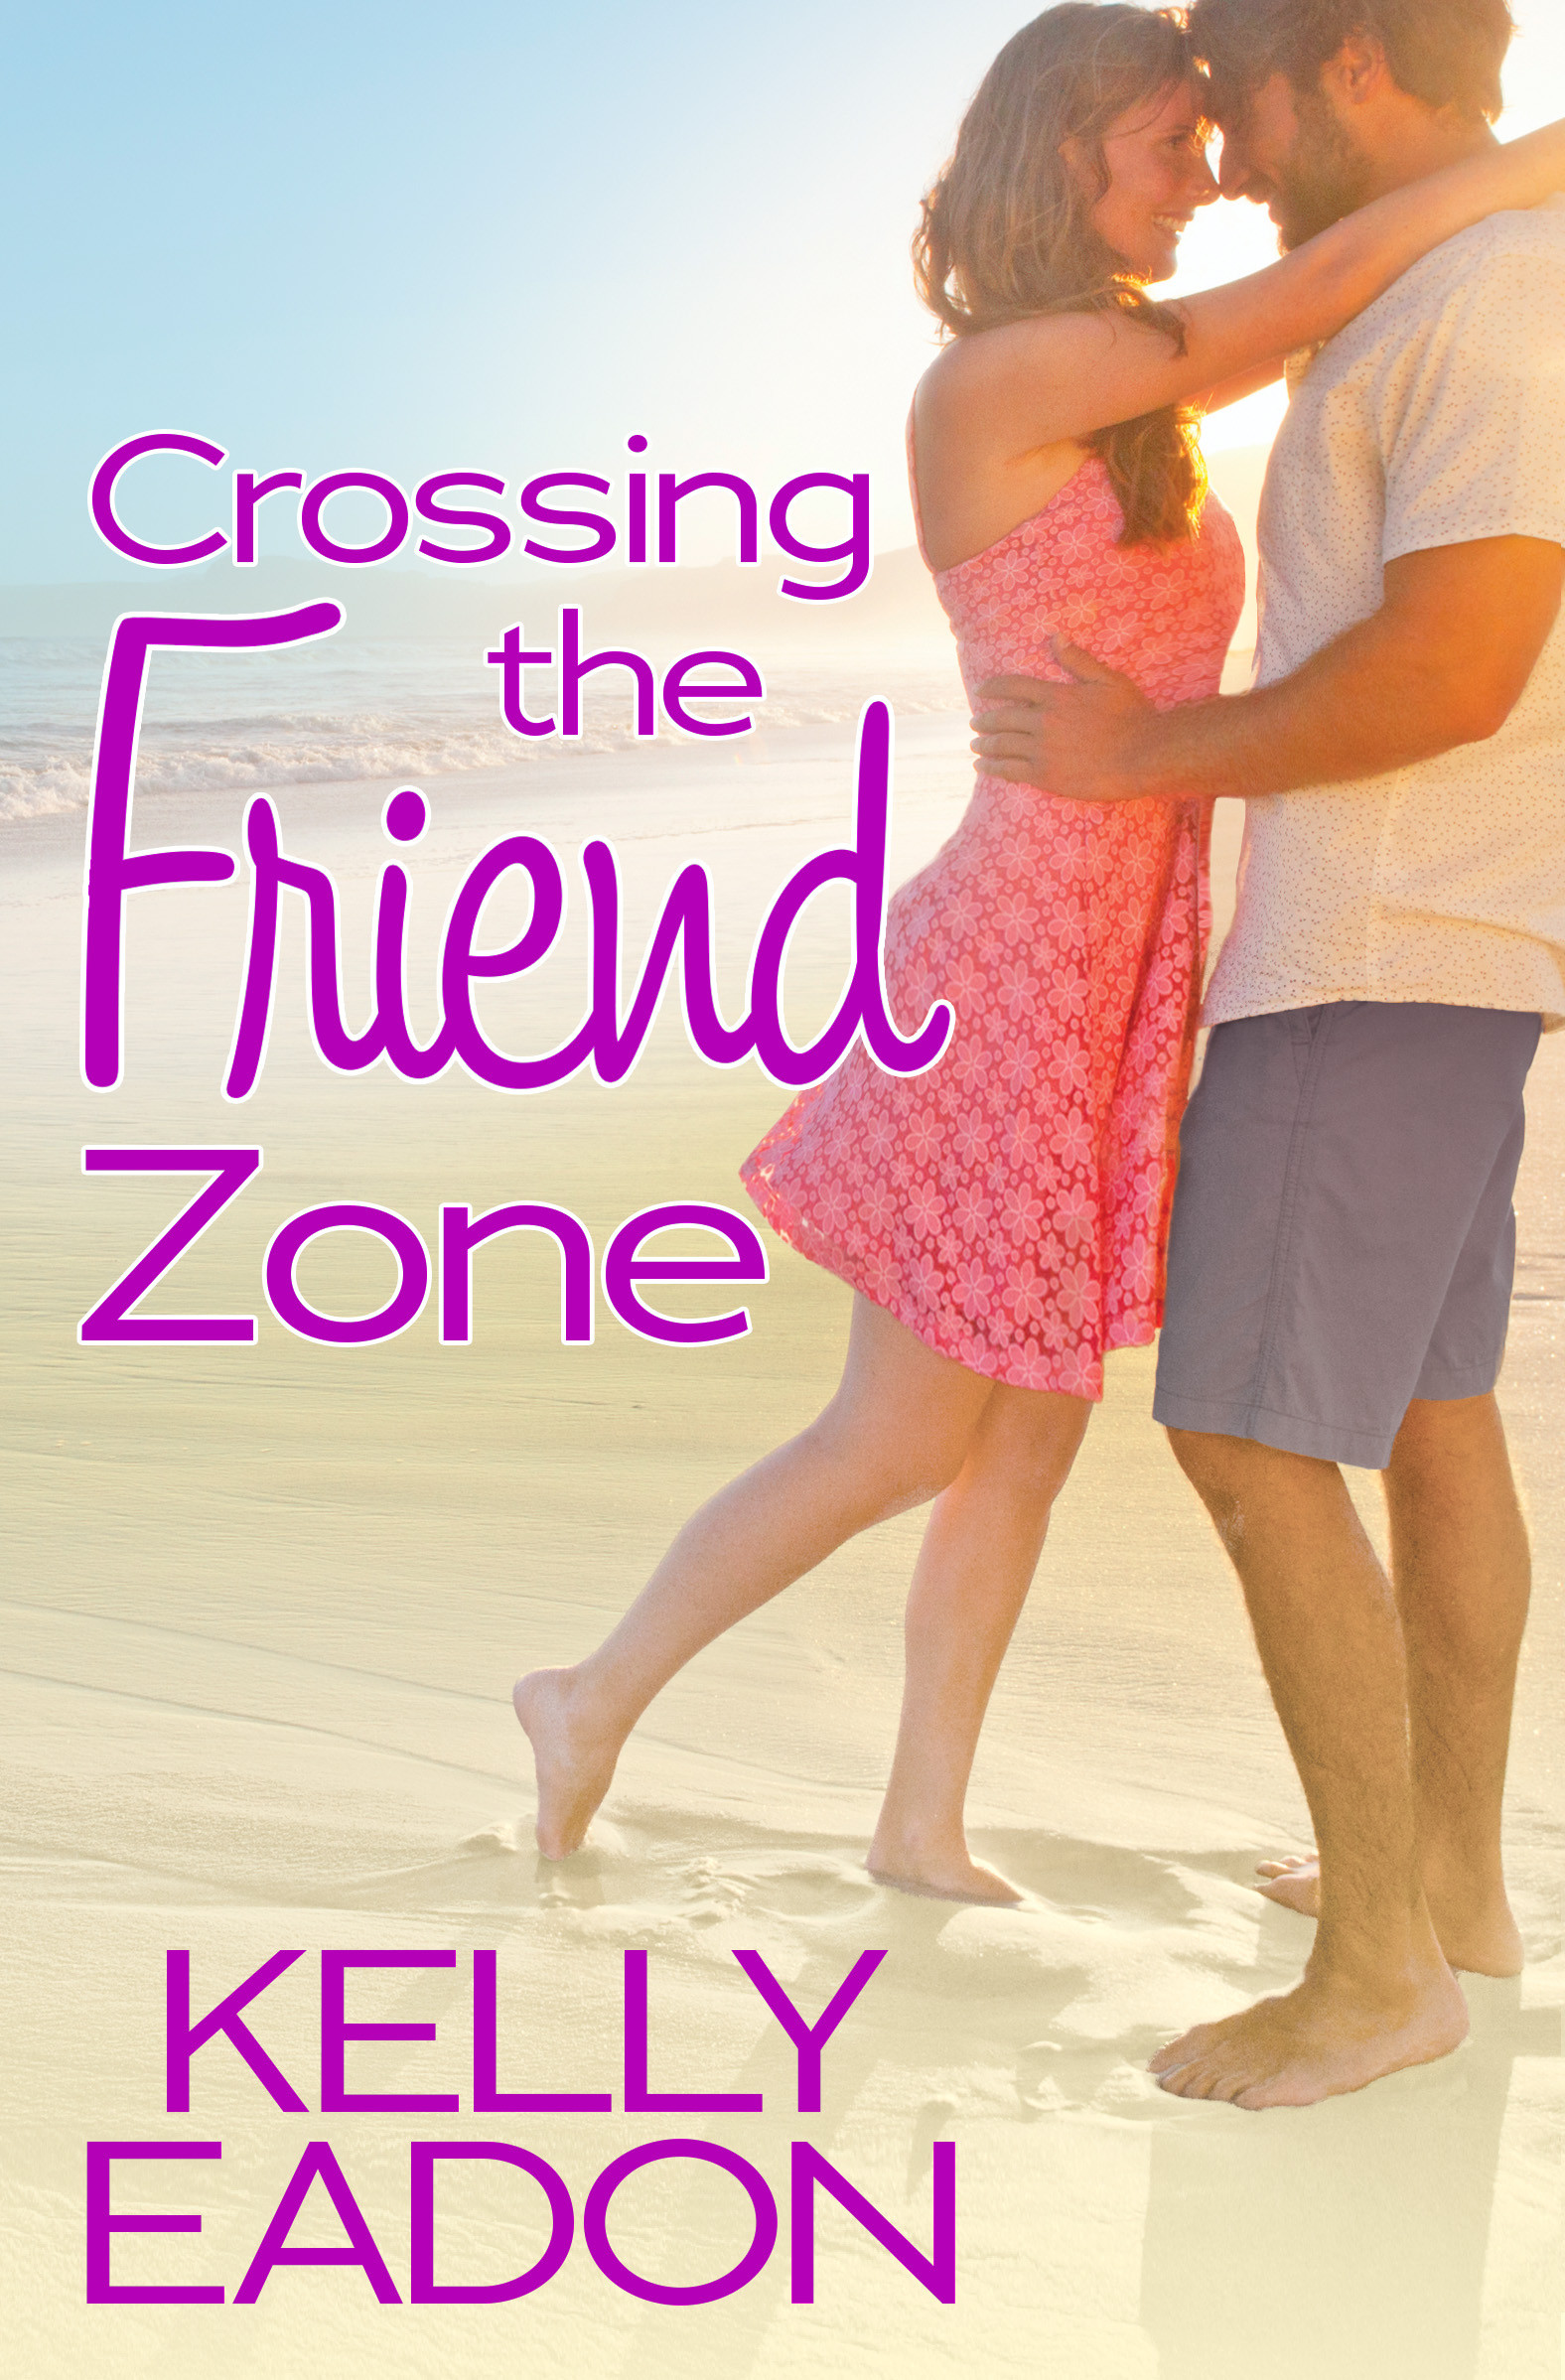 Crossing the Friends Zone by Kelly Eadon